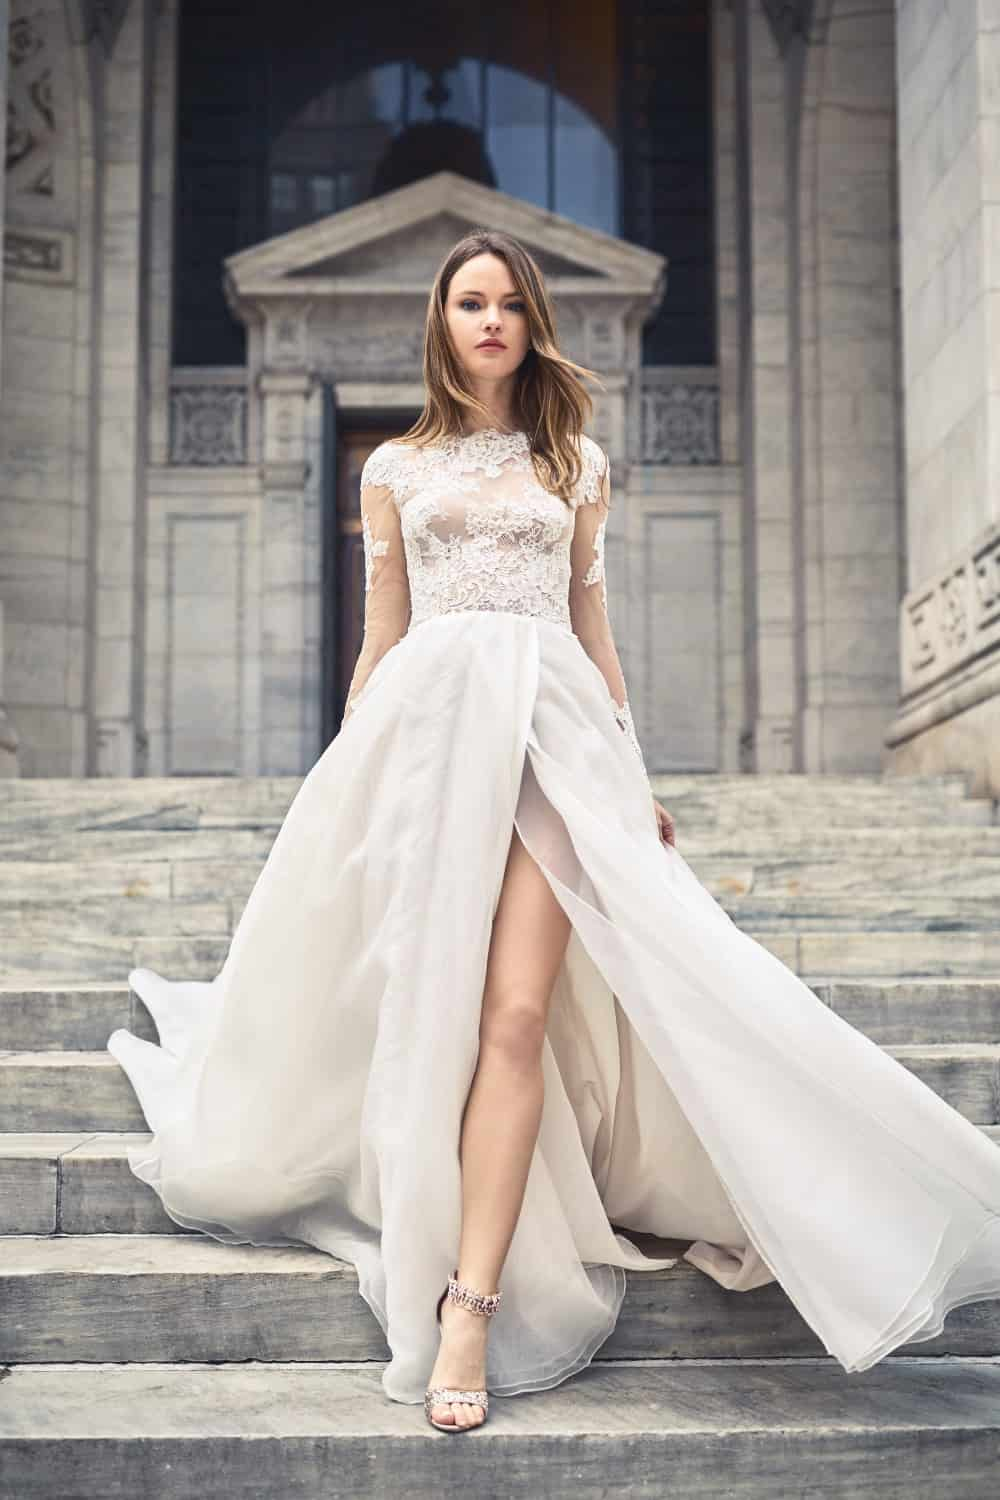 Dress for the wedding wedding guest dresses bridesmaid dresses bliss monique lhuillier wedding dresses 2018 collections ombrellifo Image collections